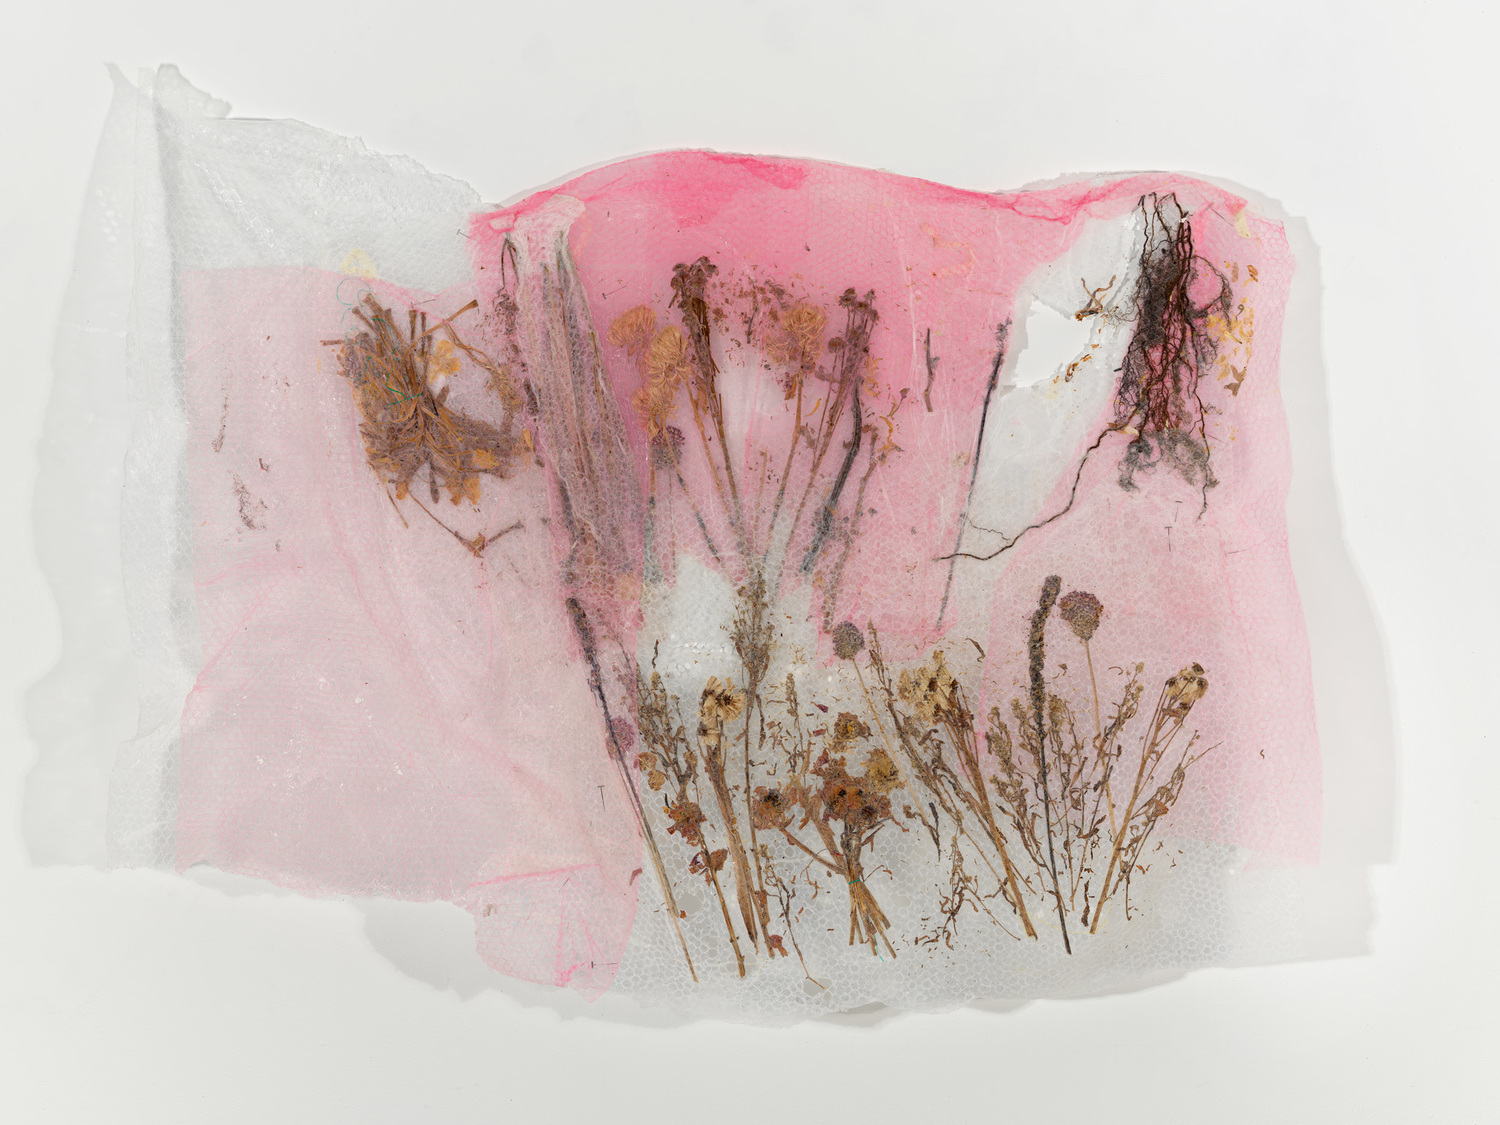 Jaclyn Mendicov, Flowers (bubble wrap), 36 x 42 inches, bubble wrap and dried flowers, 2015.